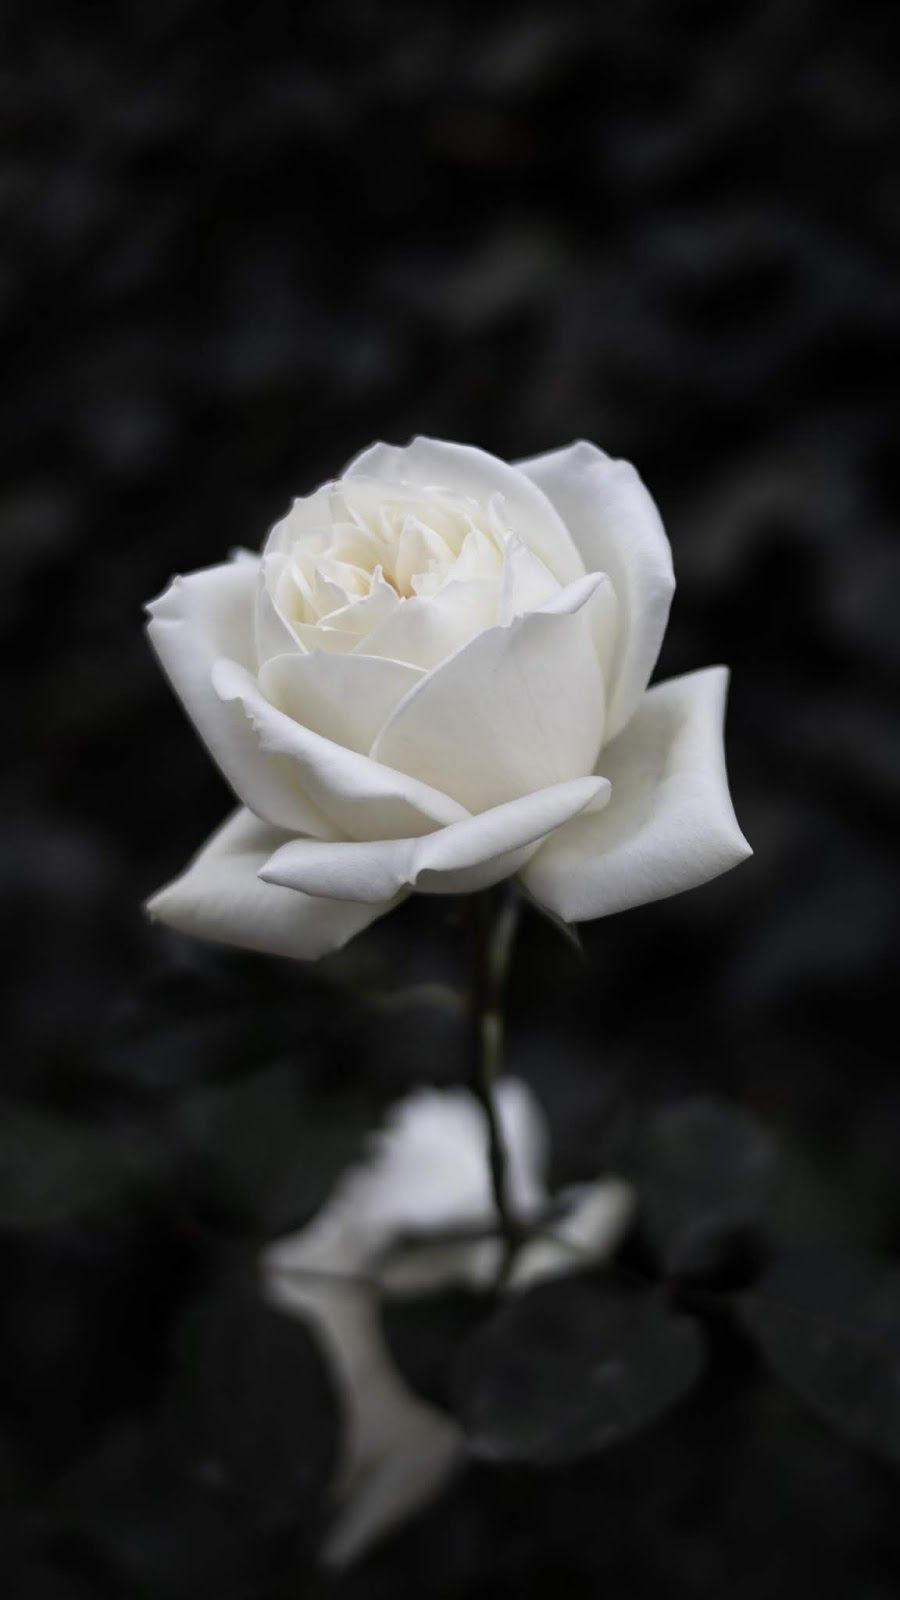 White Rose Wallpaper Iphone Android Background Followme Rose Flower Wallpaper Black And White Roses Dark Background Wallpaper